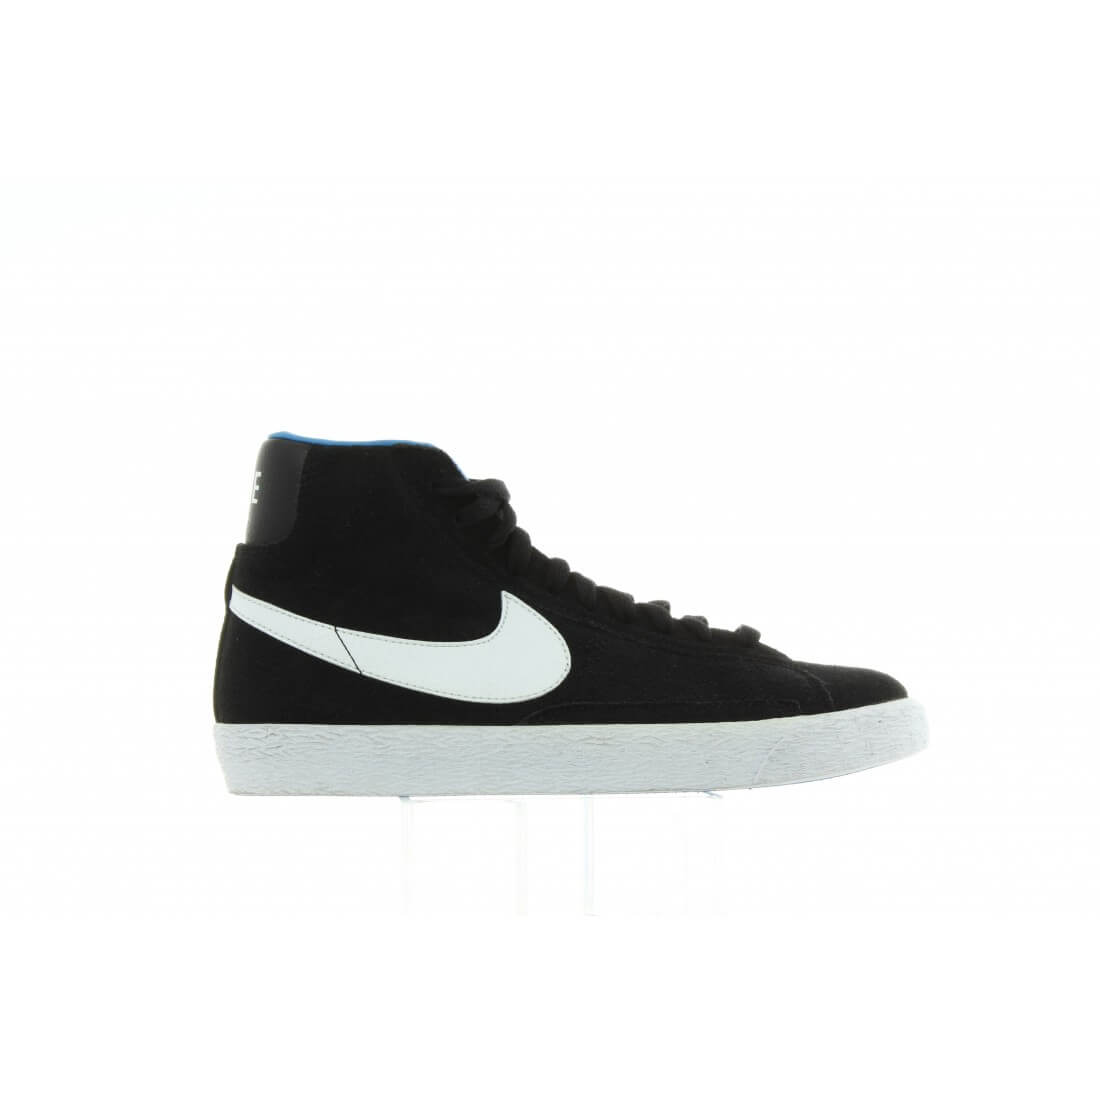 best loved 6e693 f8544 Buty Nike Blazer Mid Vintage GS 539929 014